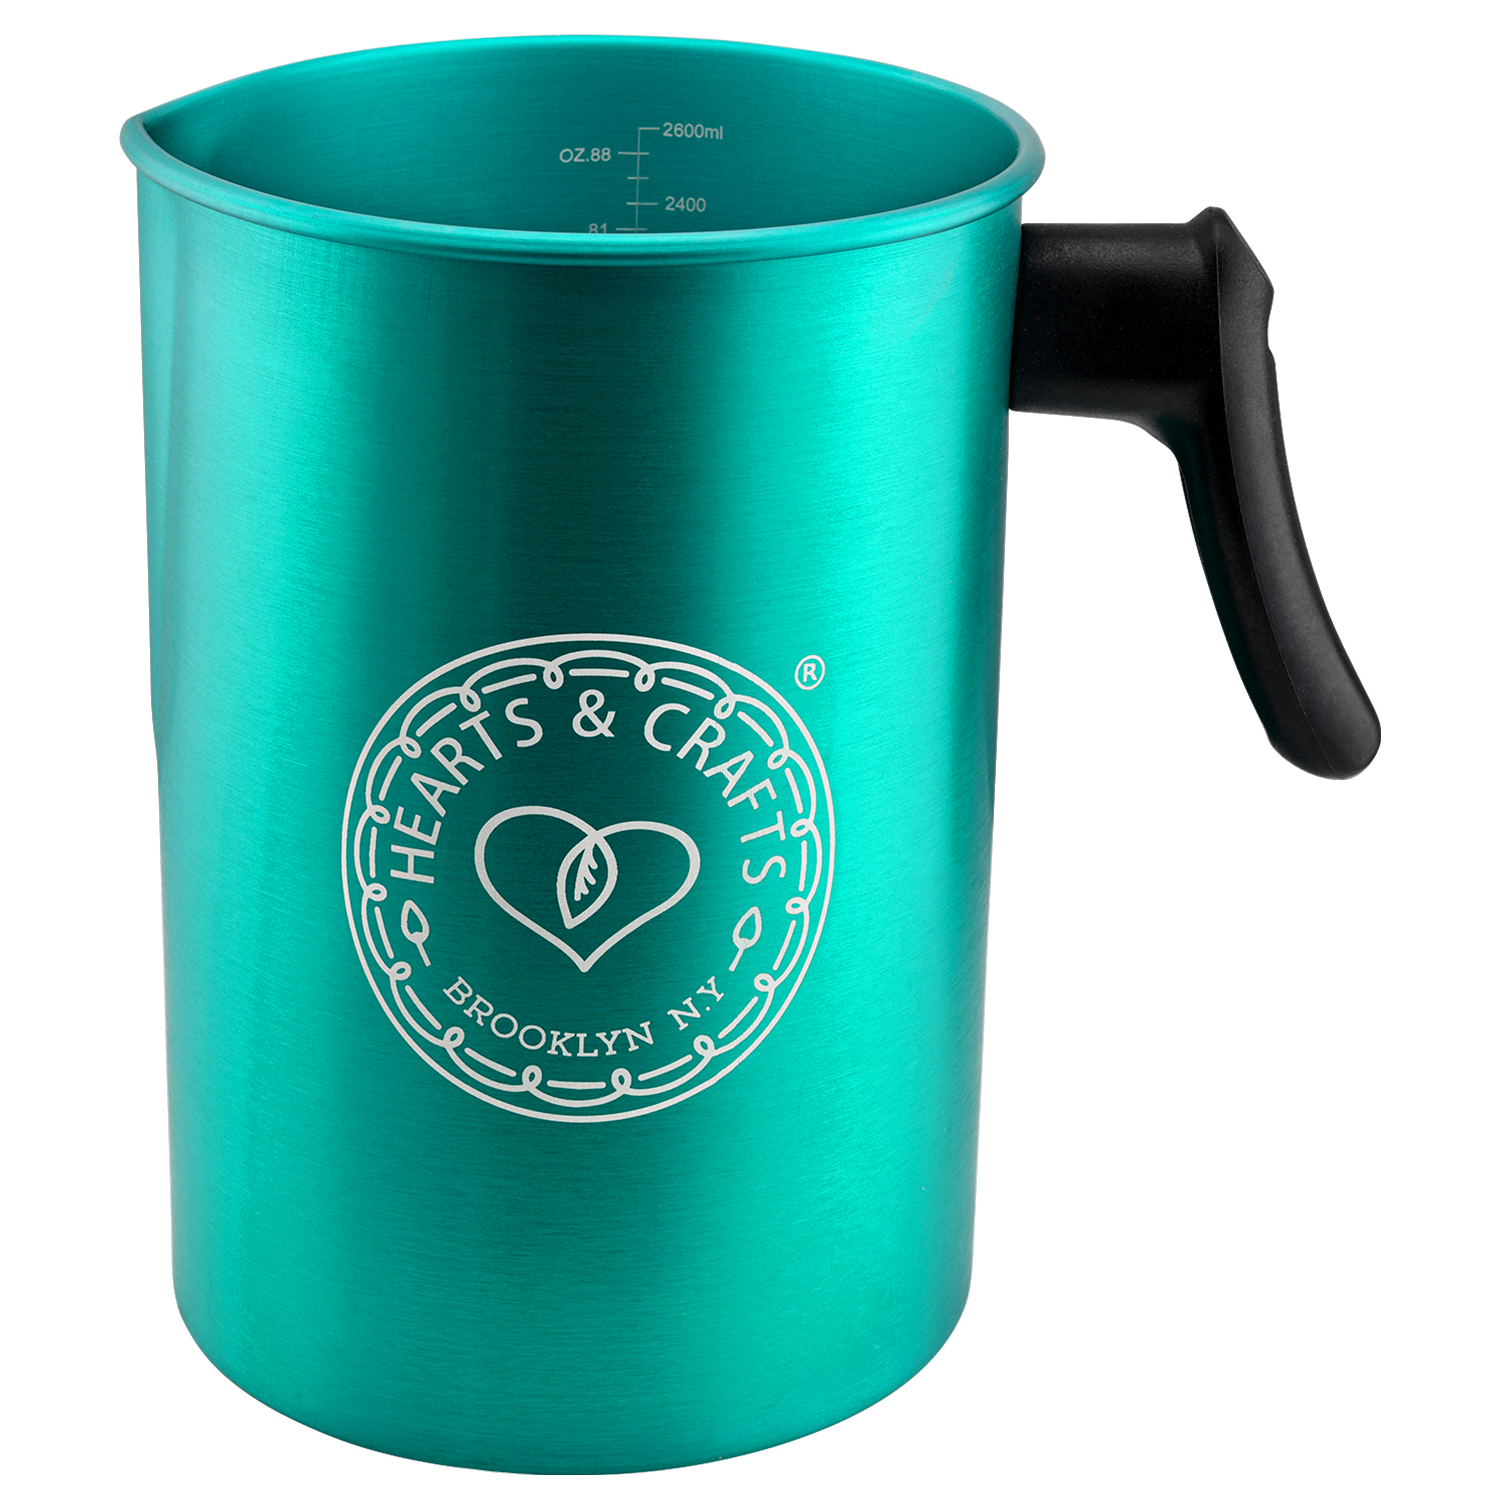 64oz. Candle Pouring Pot, Teal